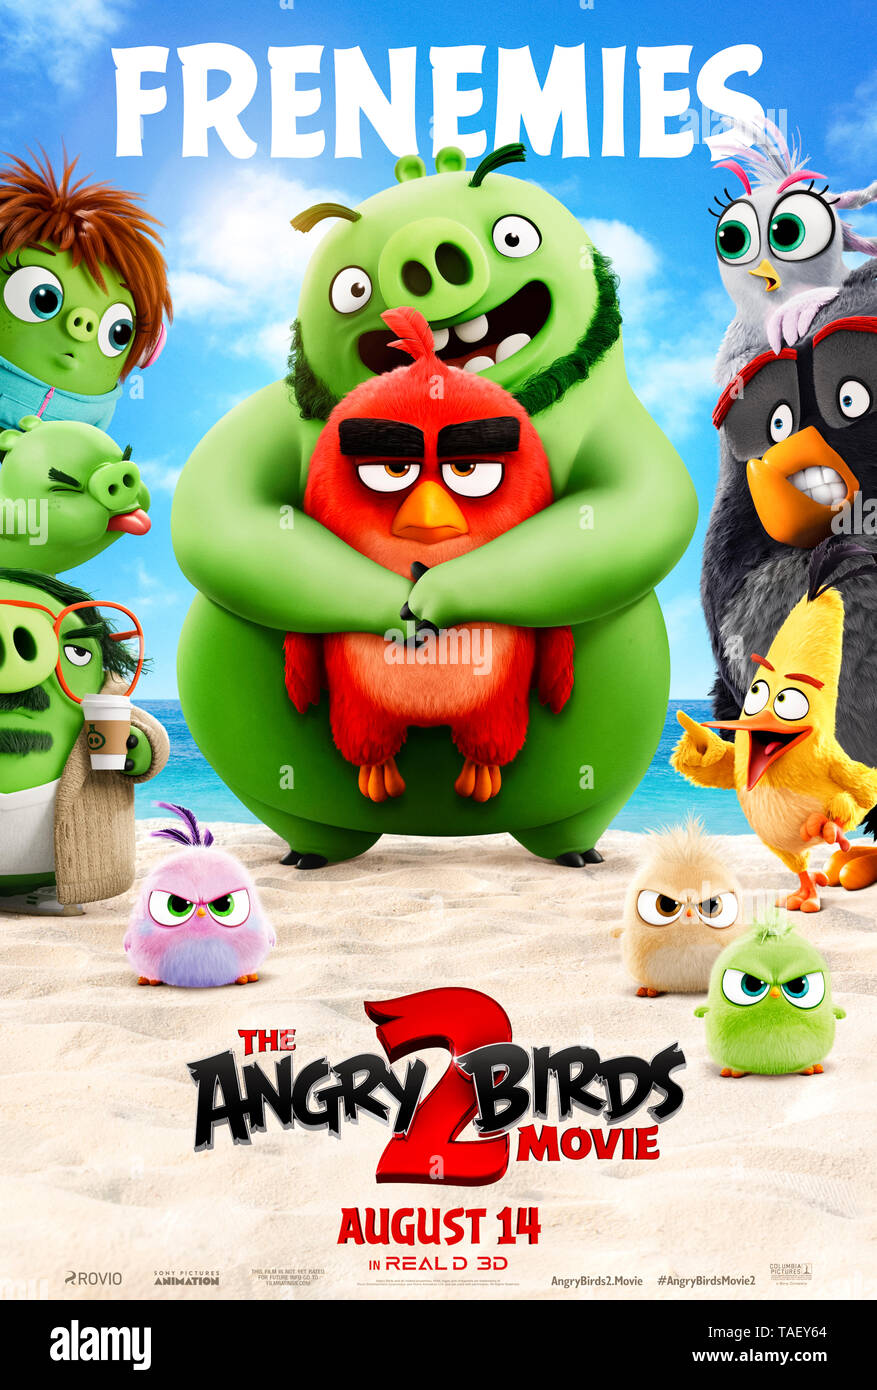 The Angry Birds Movie 2 (2019) directed by  Thurop Van Orman and starring  Peter Dinklage, Bill Hader and Awkwafina. - Stock Image